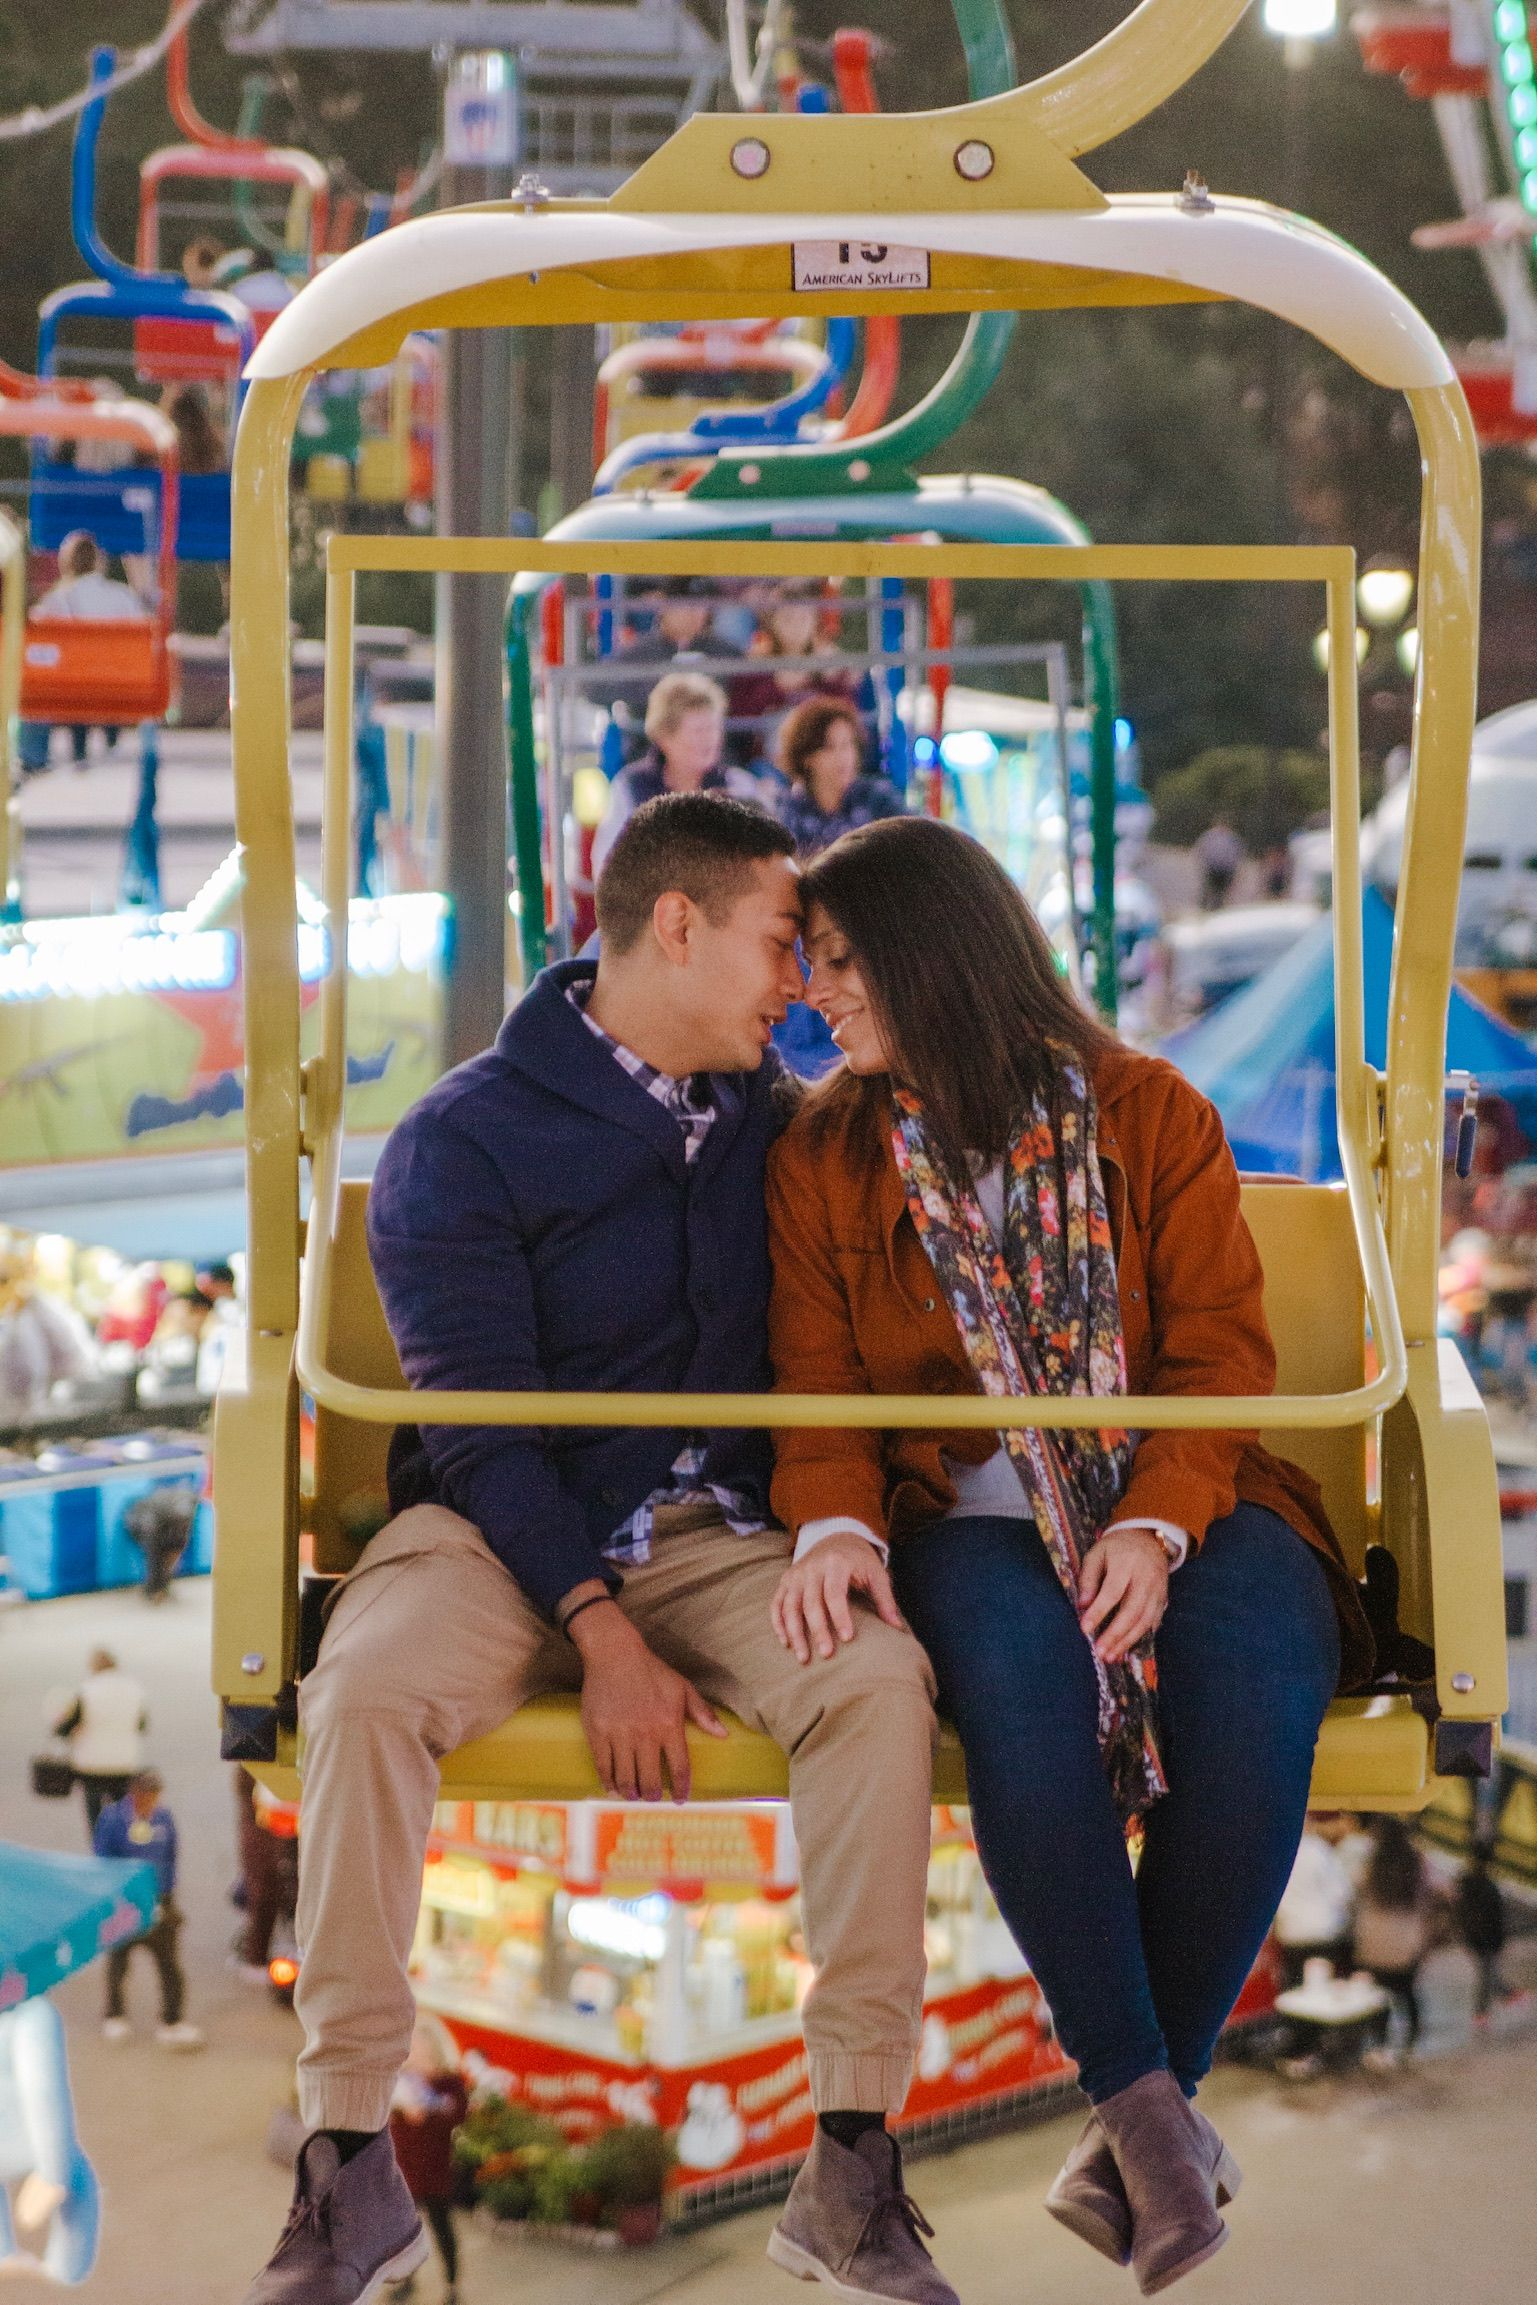 couple cuddling on an yellow skii lift chair at the state fair in north carolina